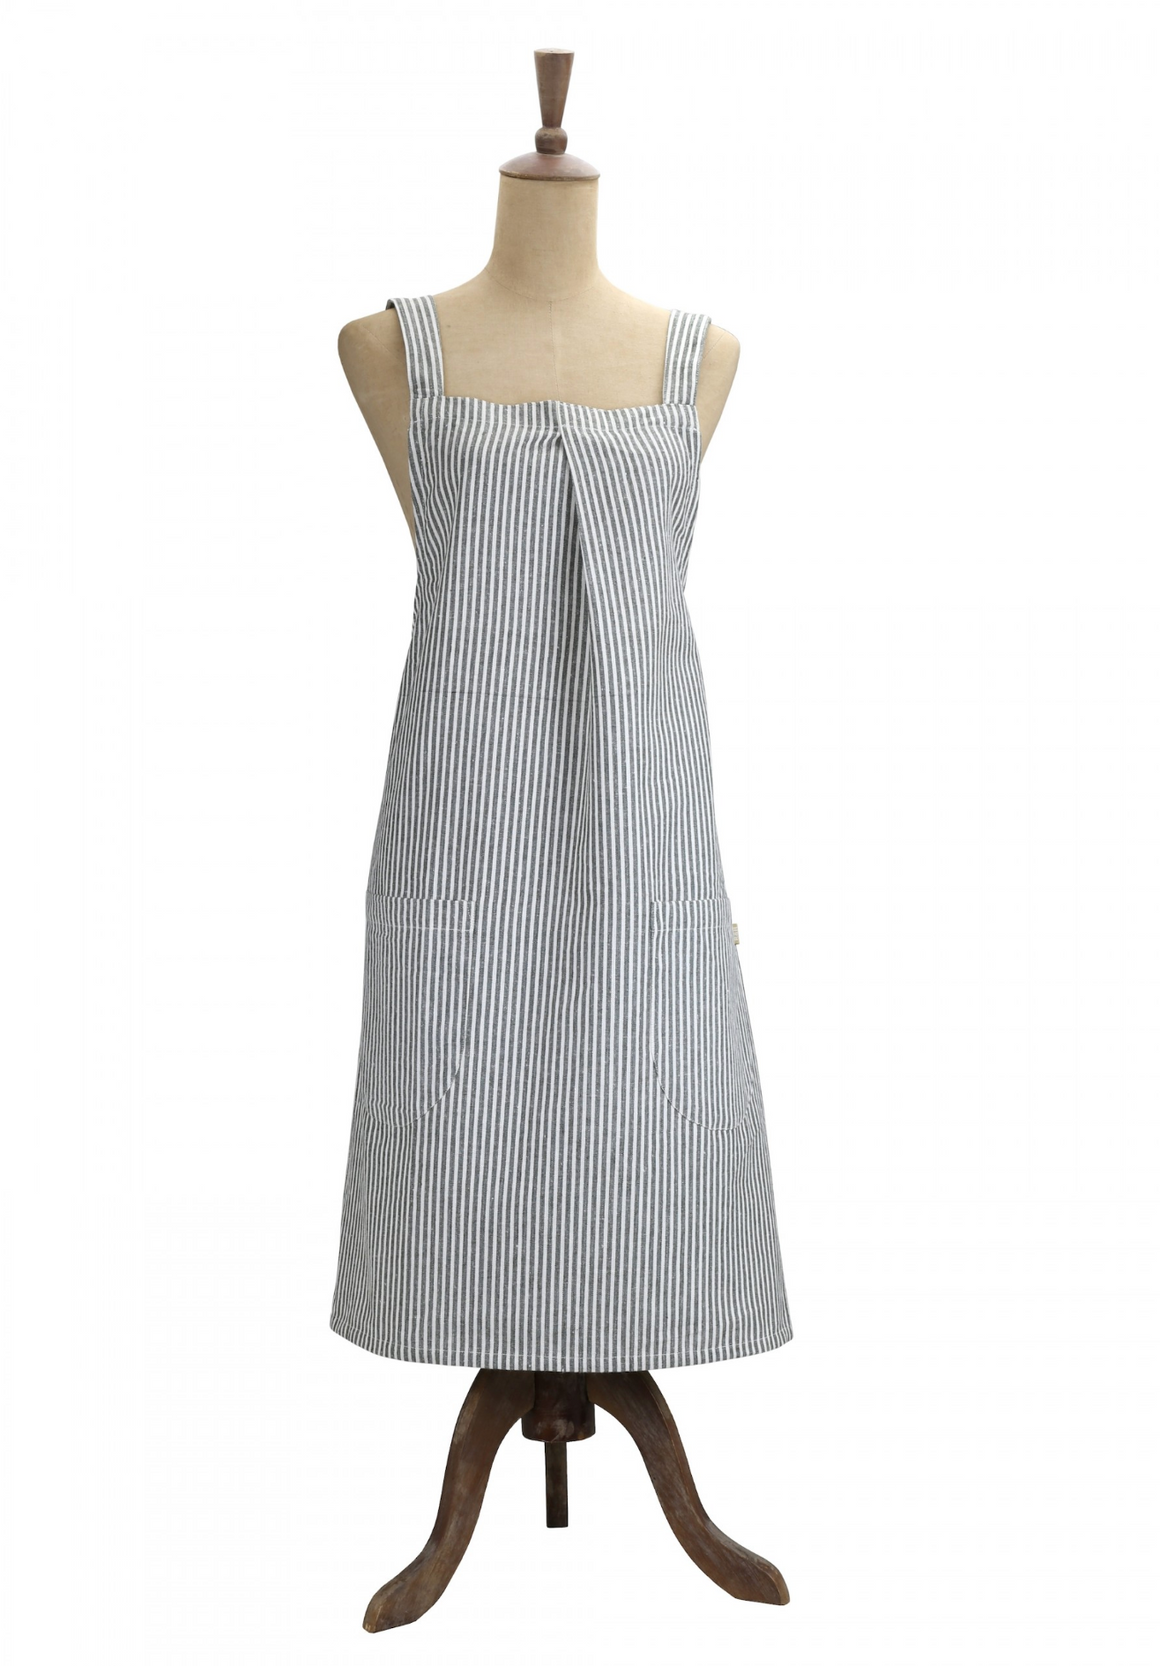 ABBY STRIPE APRON - OLIVE GREEN